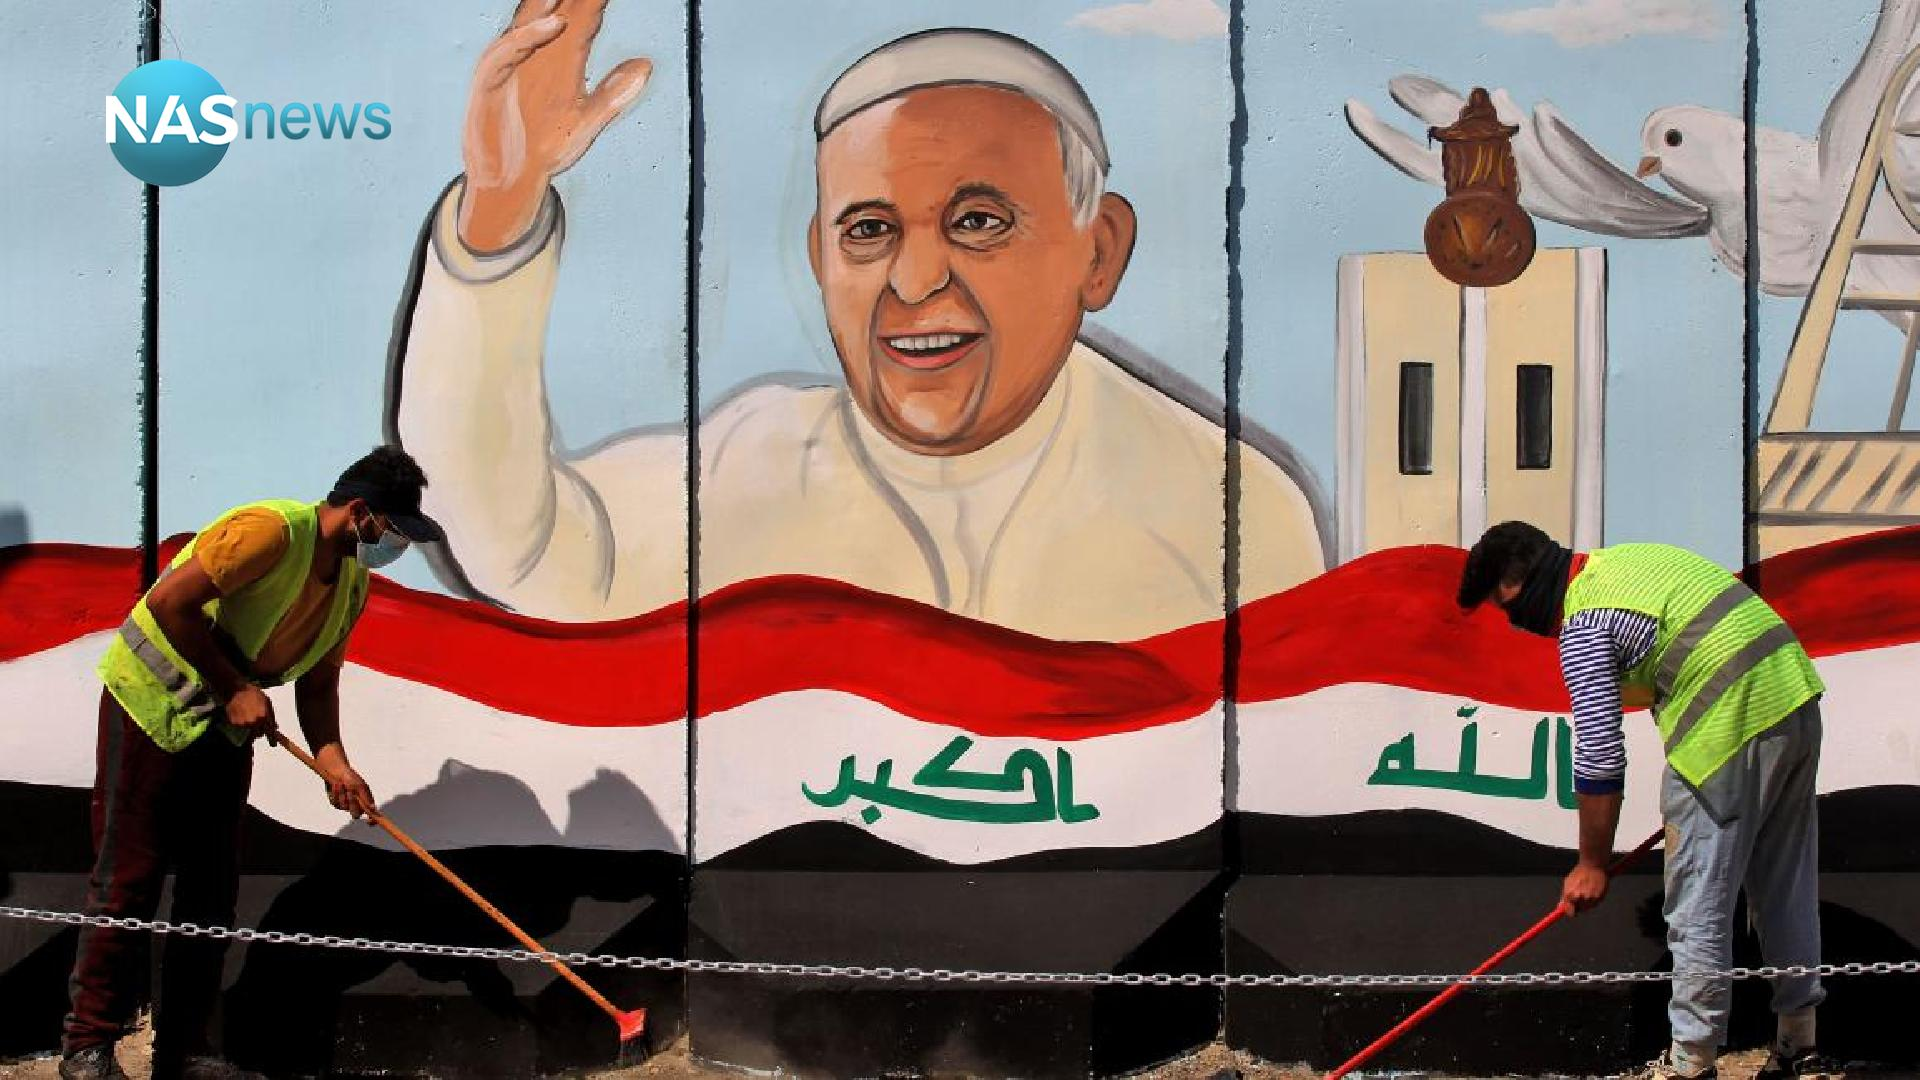 During his meeting with Fuad Hussein ... the Pope of the Vatican talks again about his recent visit to Iraq F6a2d3755-54066-202103020154